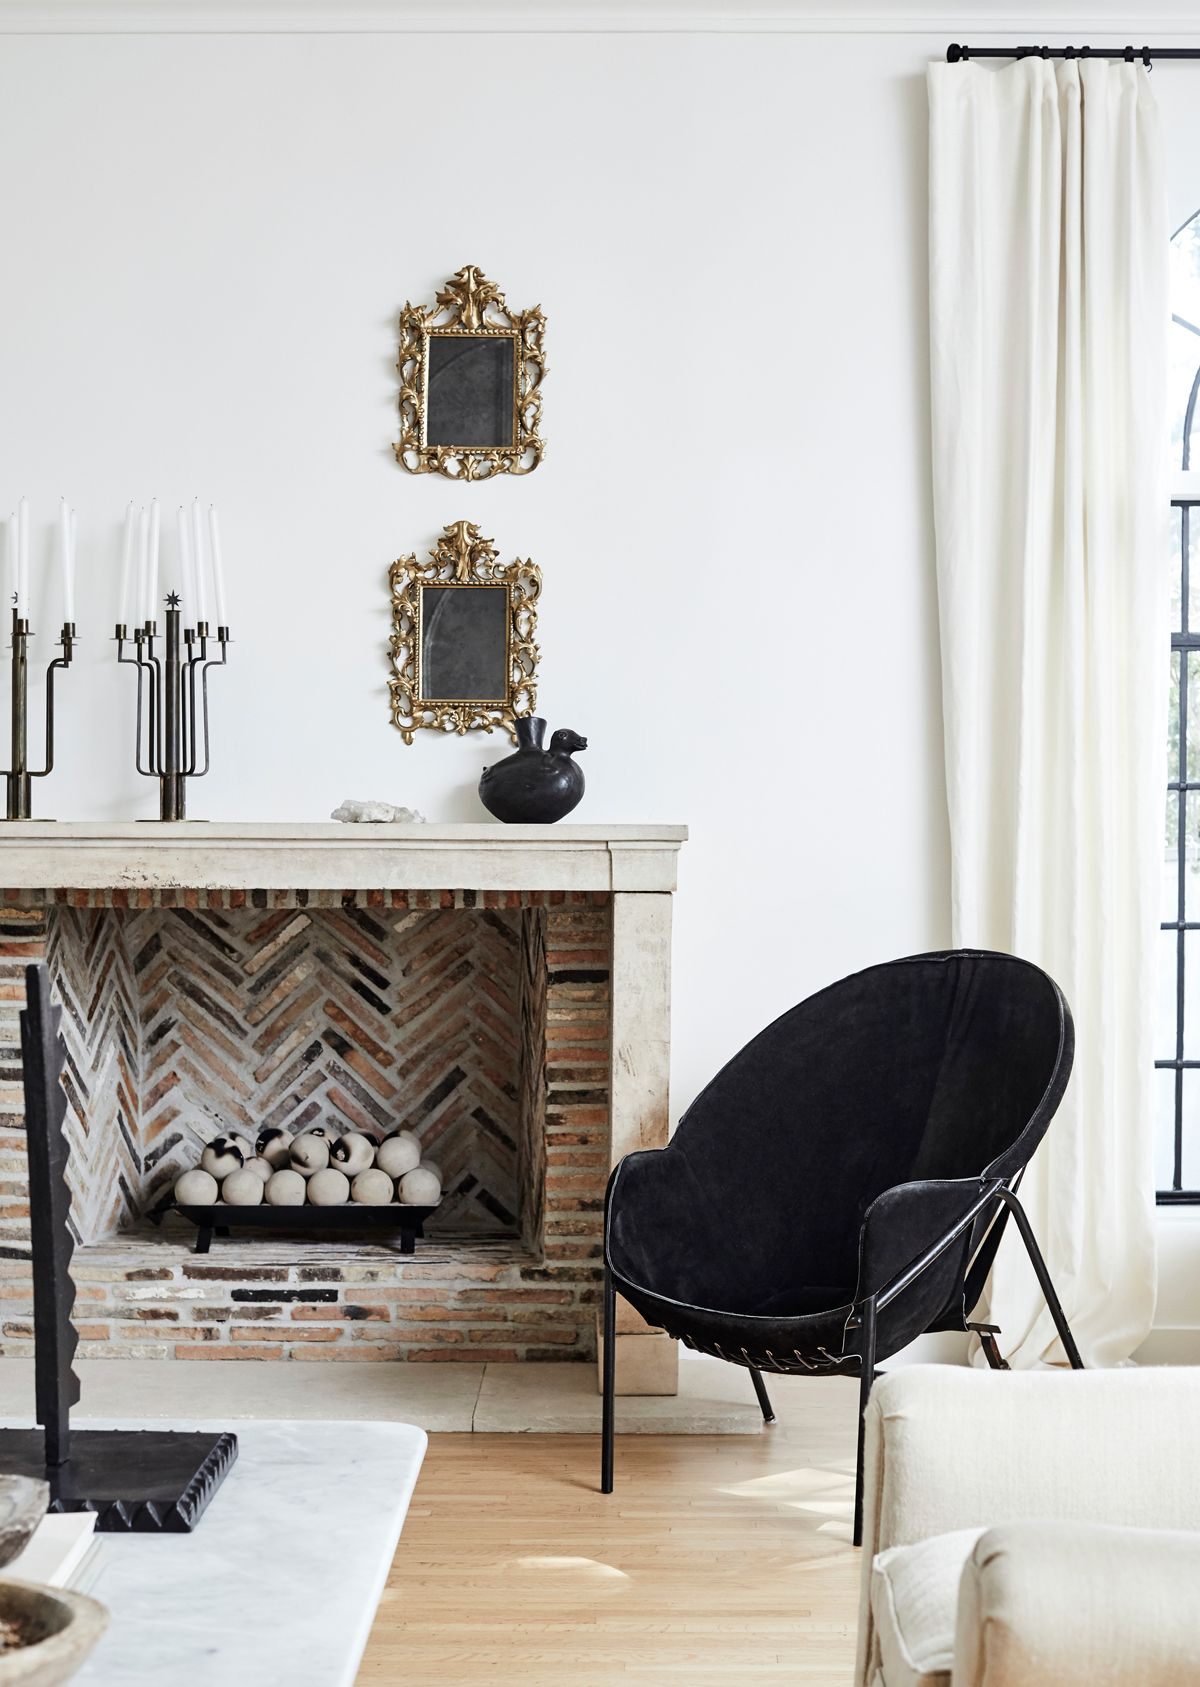 Inside Nate Berkus And Jeremiah Brent's Family Home In L.a (View 16 of 25)